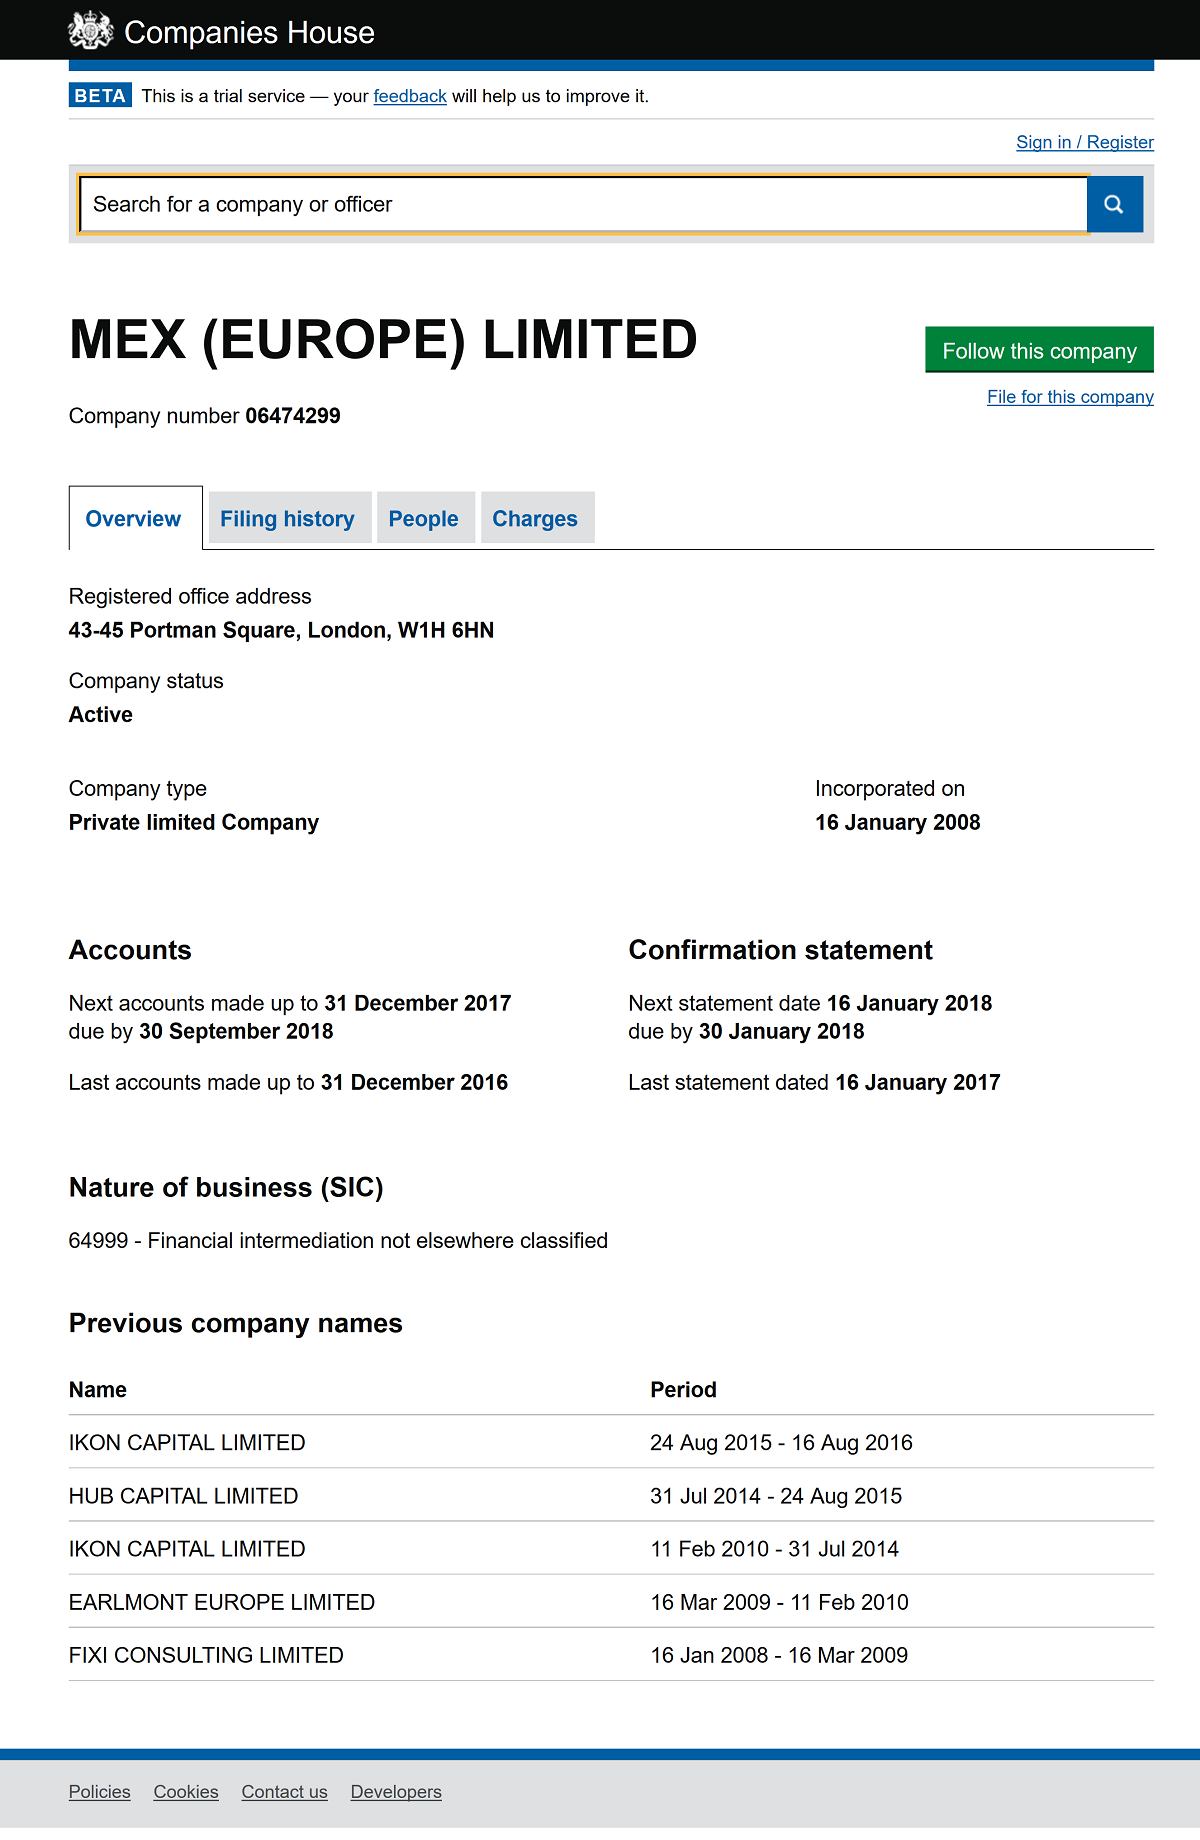 'MEX (EUROPE) LIMITED-beta_companieshouse_gov_uk_company_06474299.